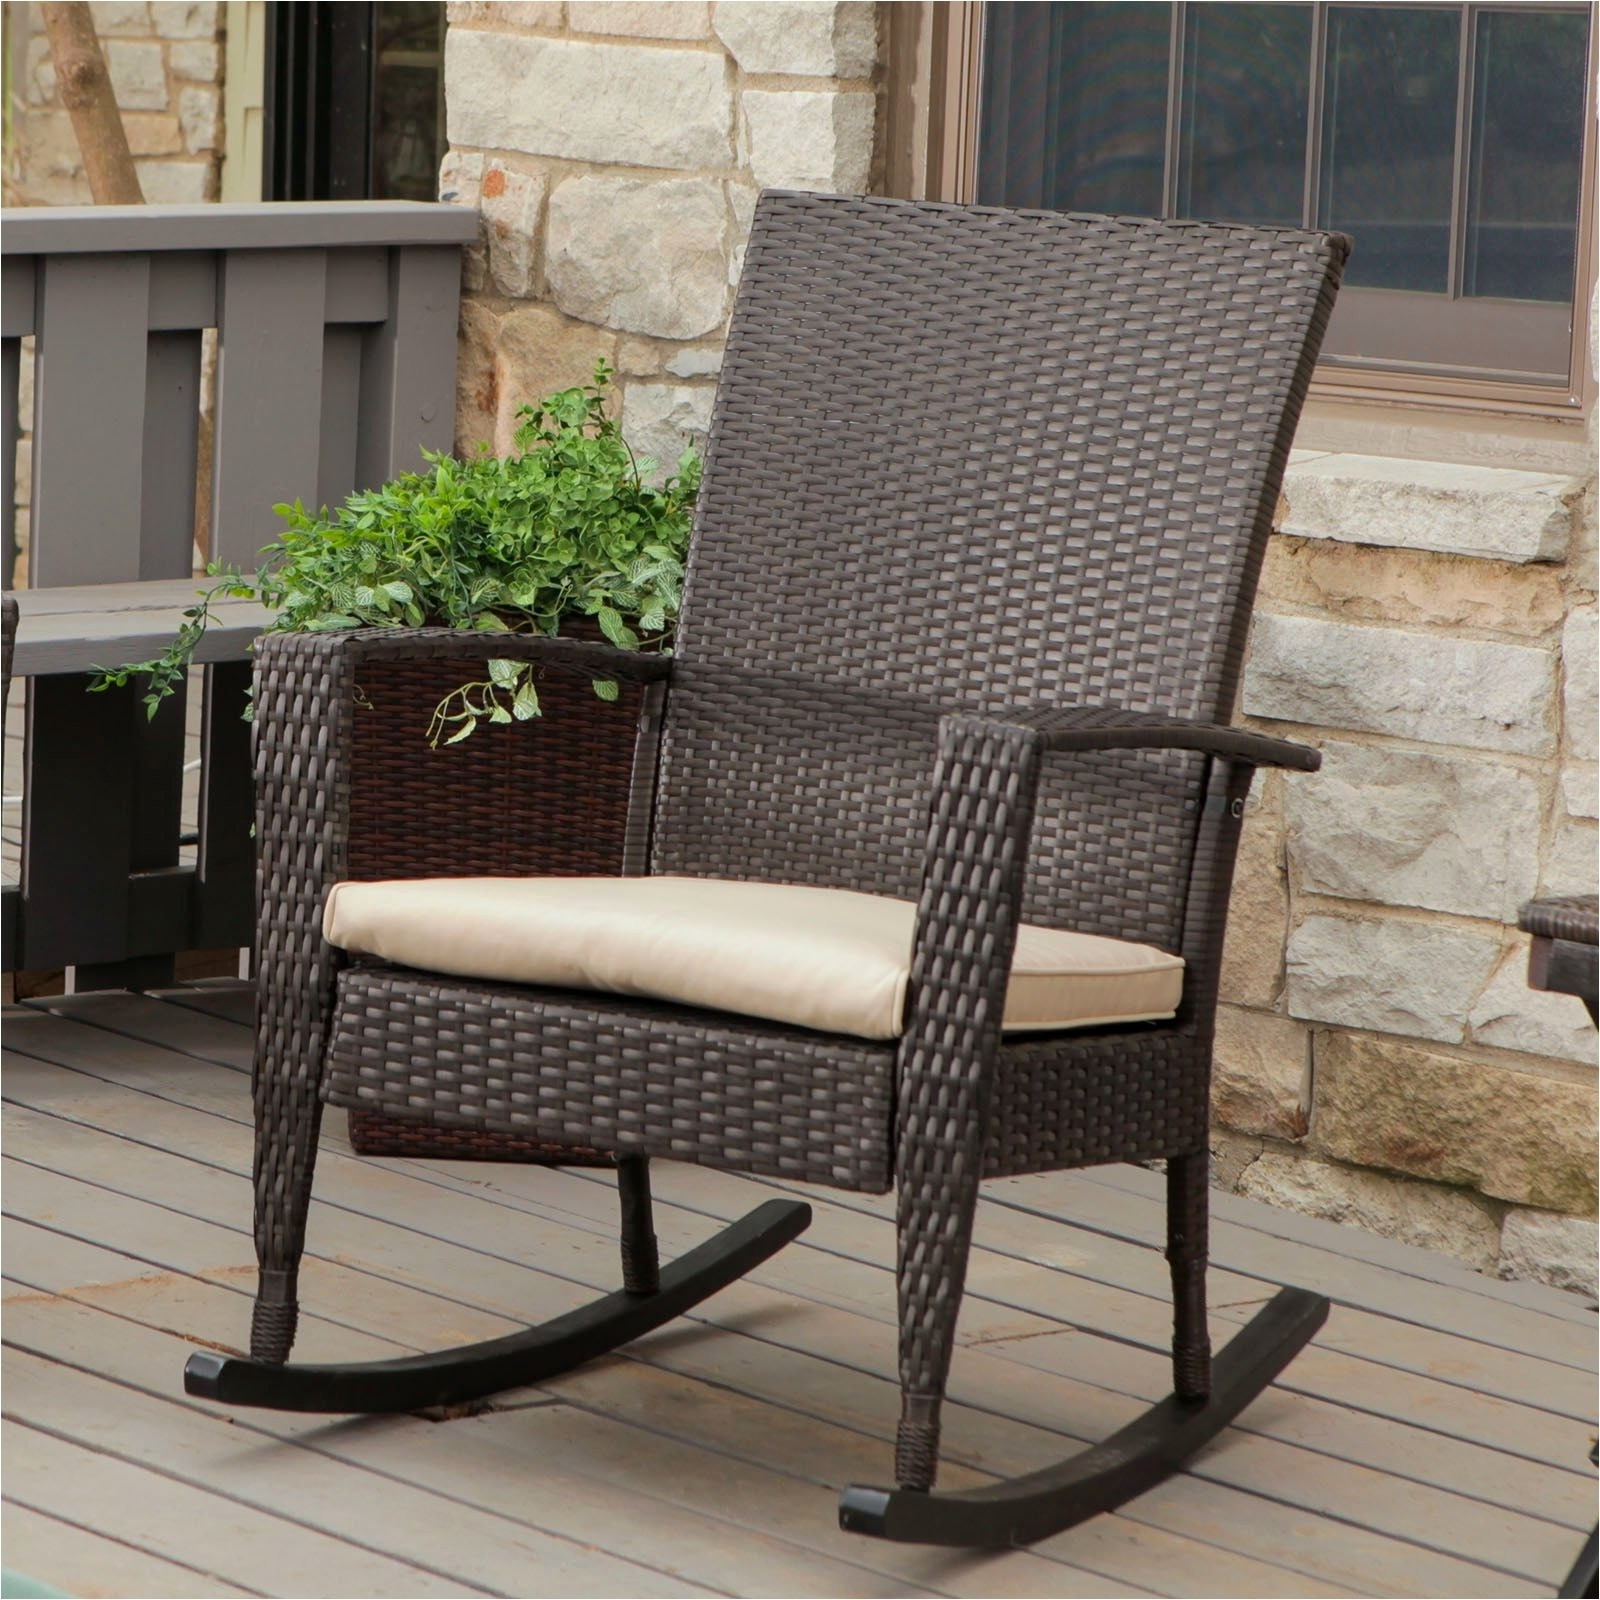 Most Up To Date Patio Rocking Chairs Sets In Patio : Furniture Wicker Dining Set Outside Patio White Outdoor (View 4 of 15)